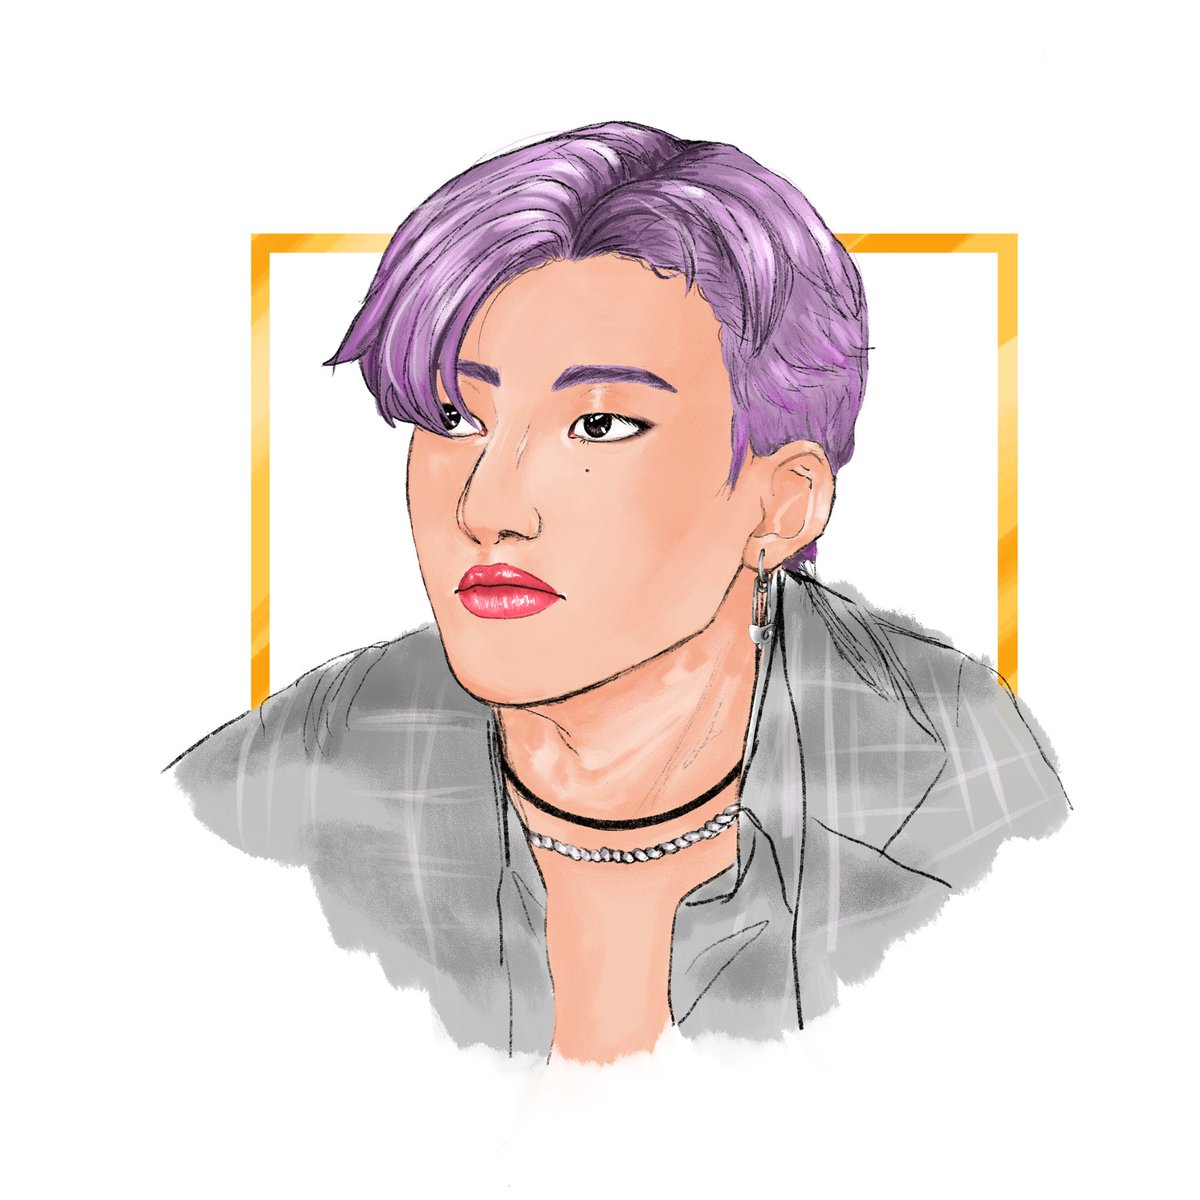 tried out a new brush not sure yet if I like it though 🤔🤔  #wooyoung #우영 #ATEEZ #에이티즈 #ATEEZfanart